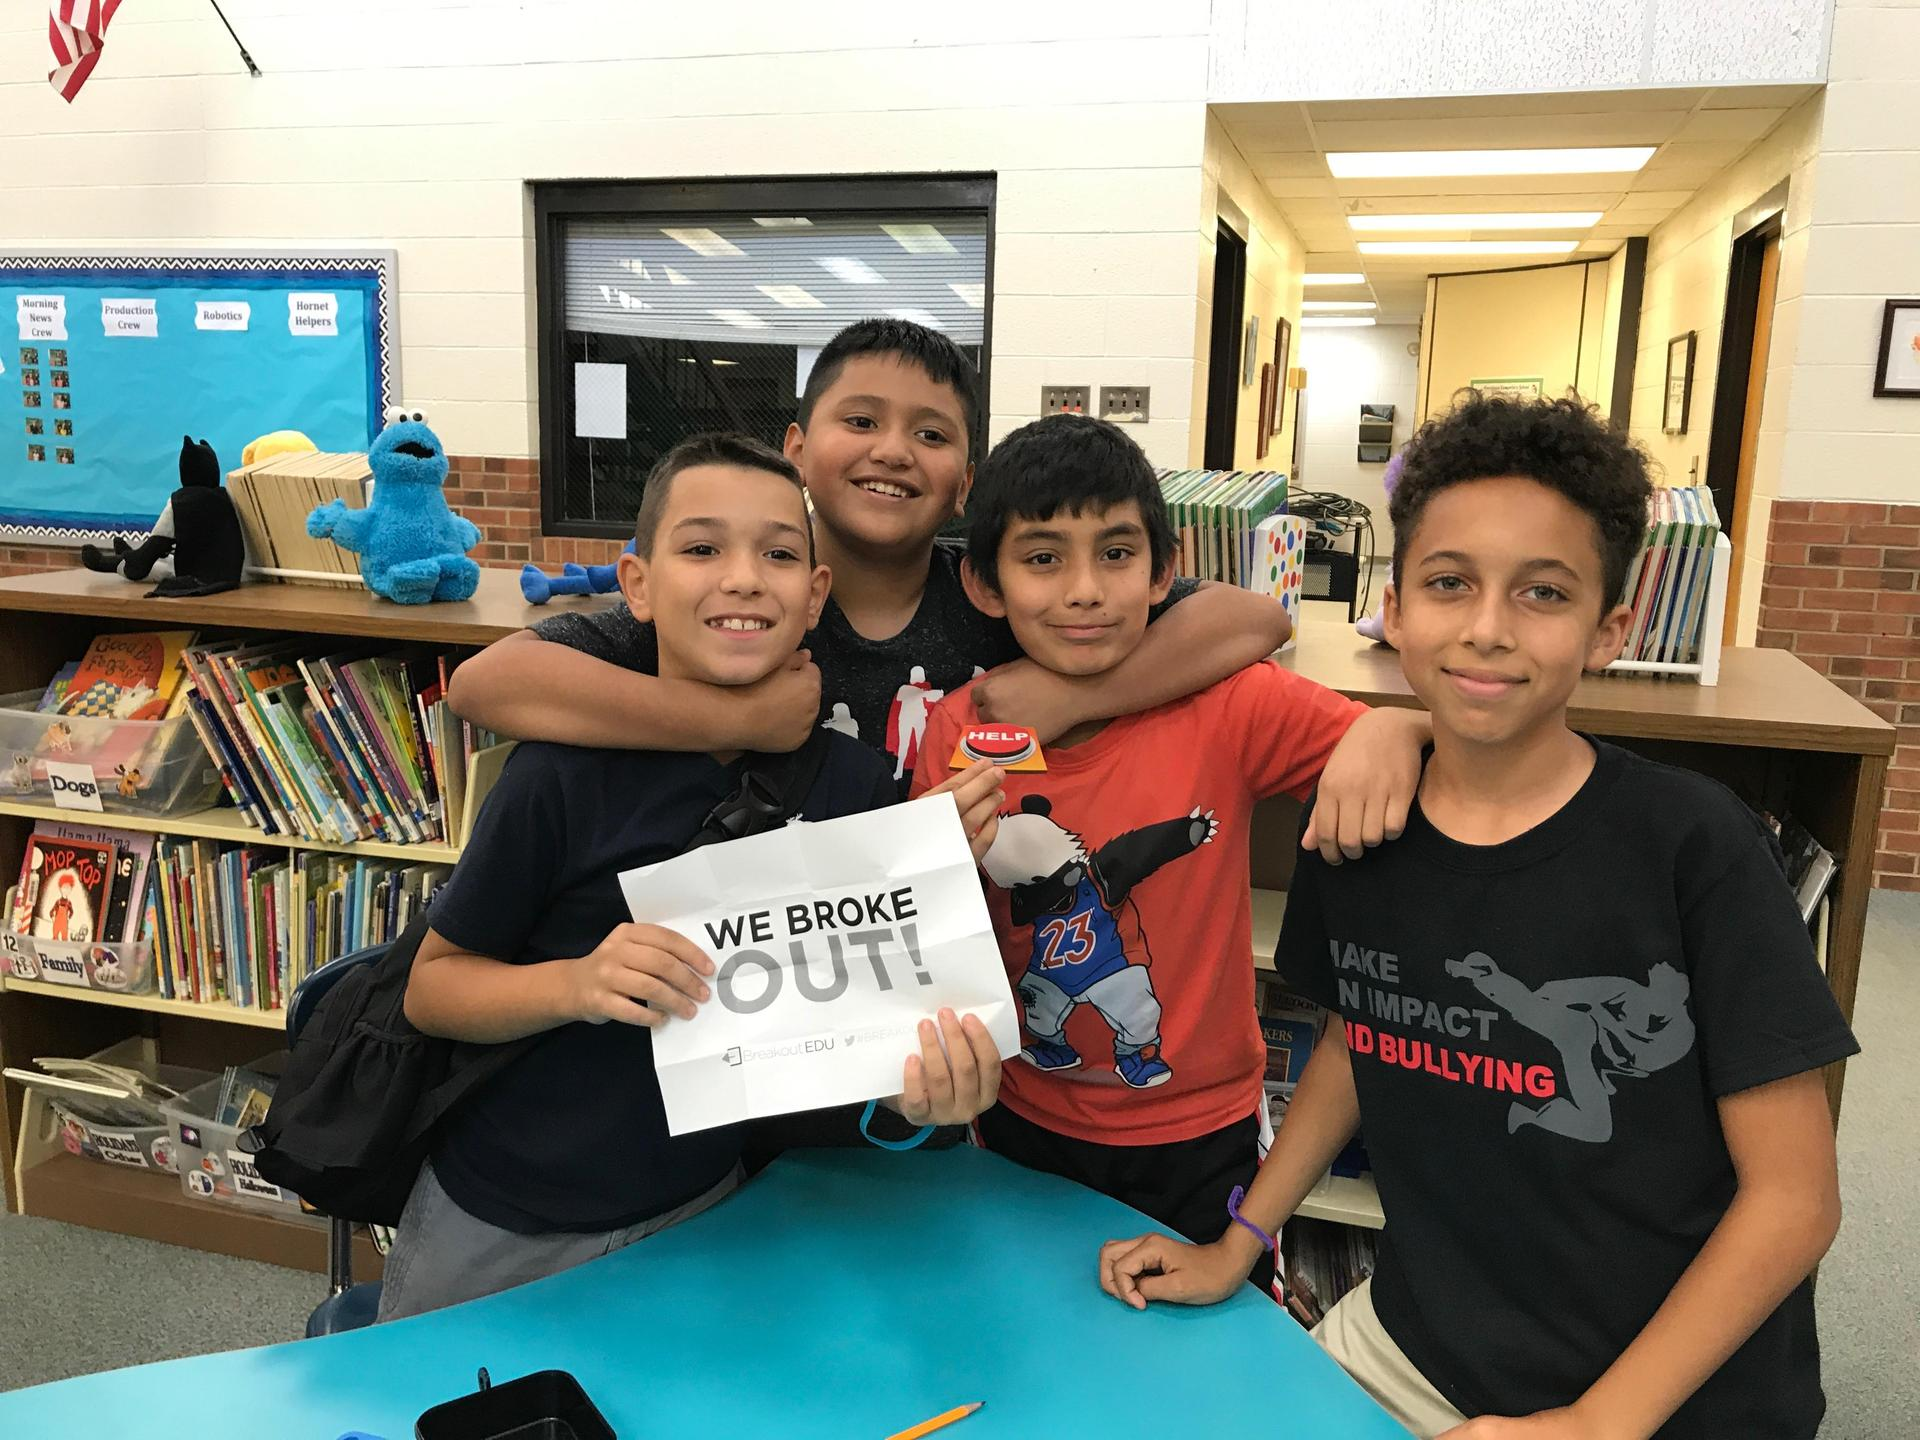 Image of students who broke out of breakout box